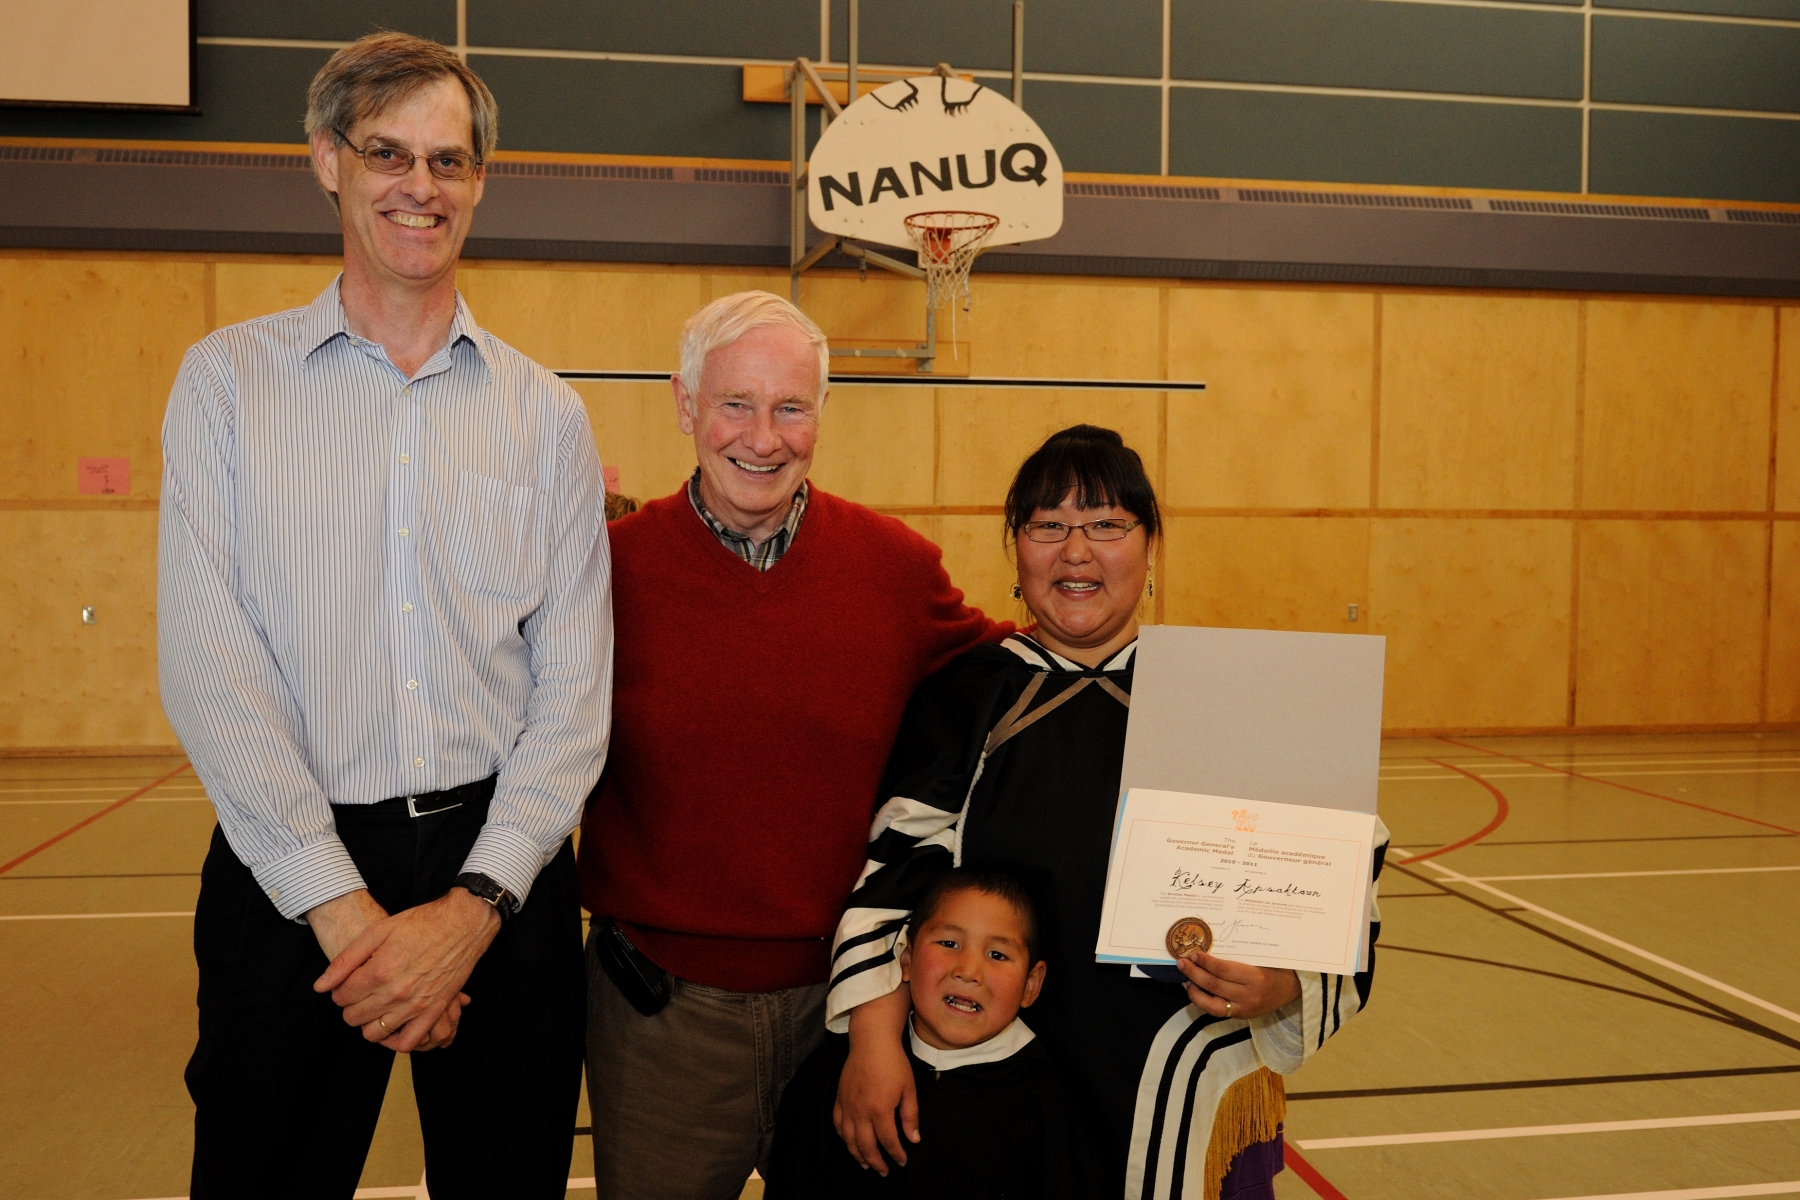 His Excellency awarded the Bronze Governor General's Academic Medal to an outstanding student at the Kugaaruk School.